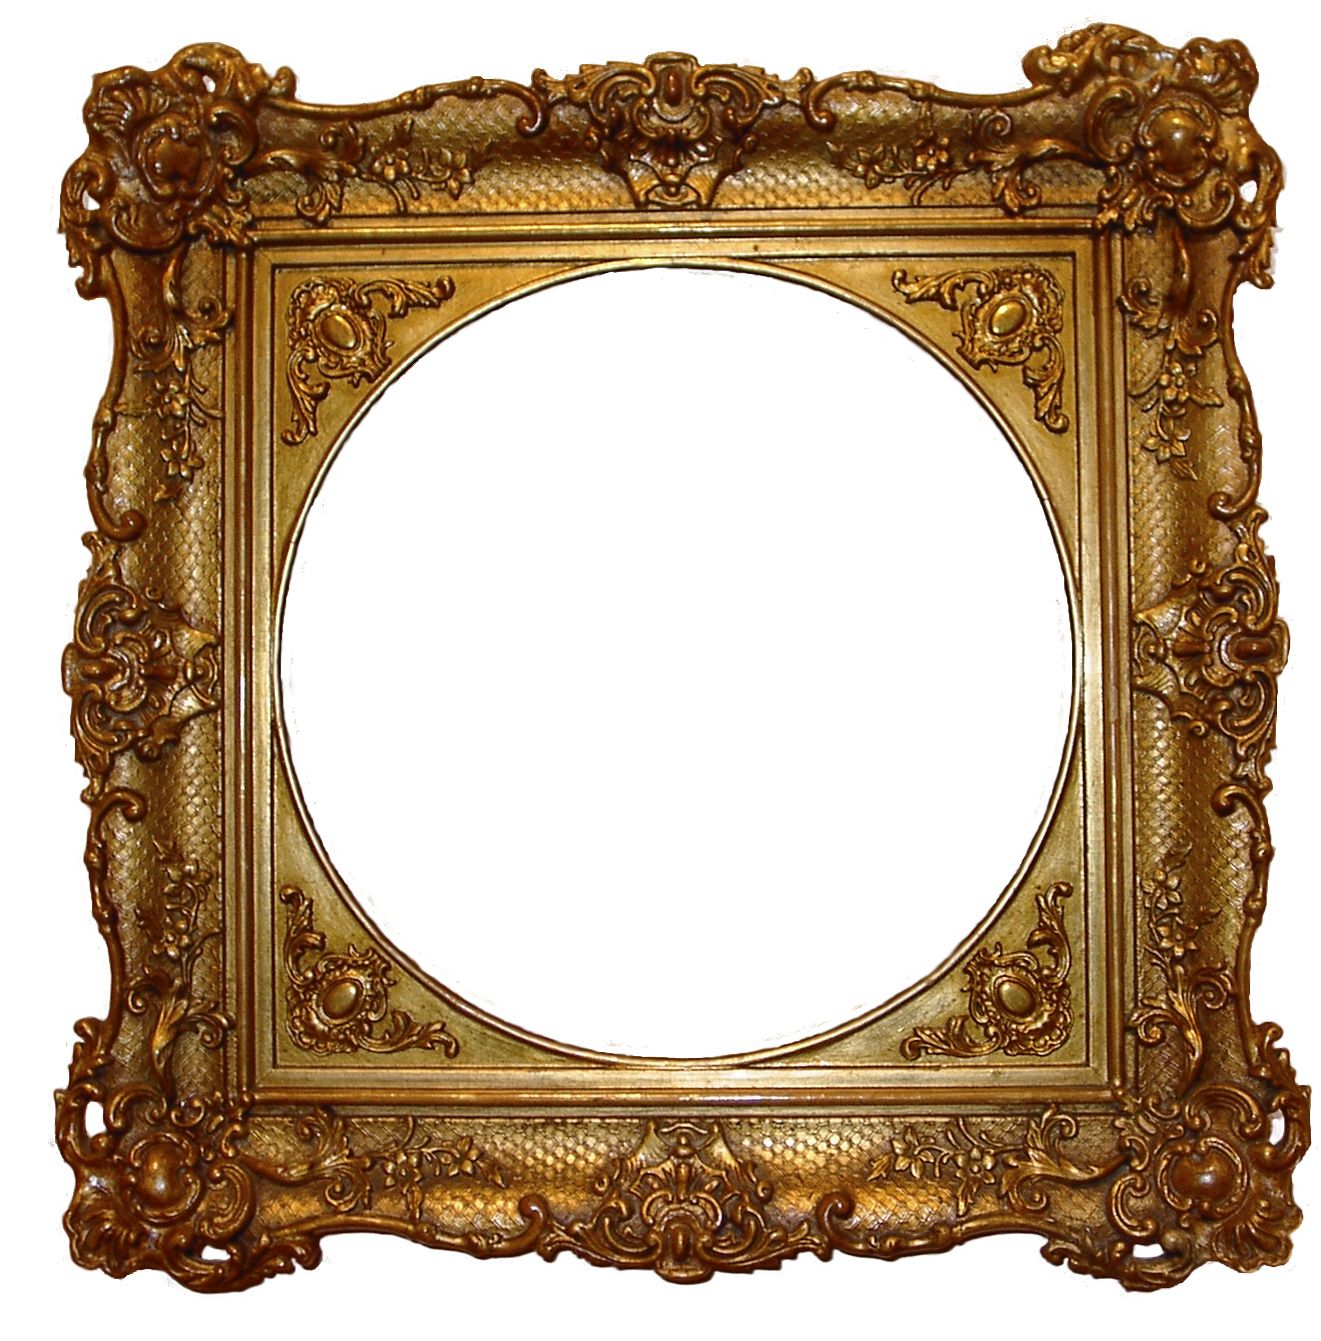 posh gold frame stock by sockmonkeystock on deviantart